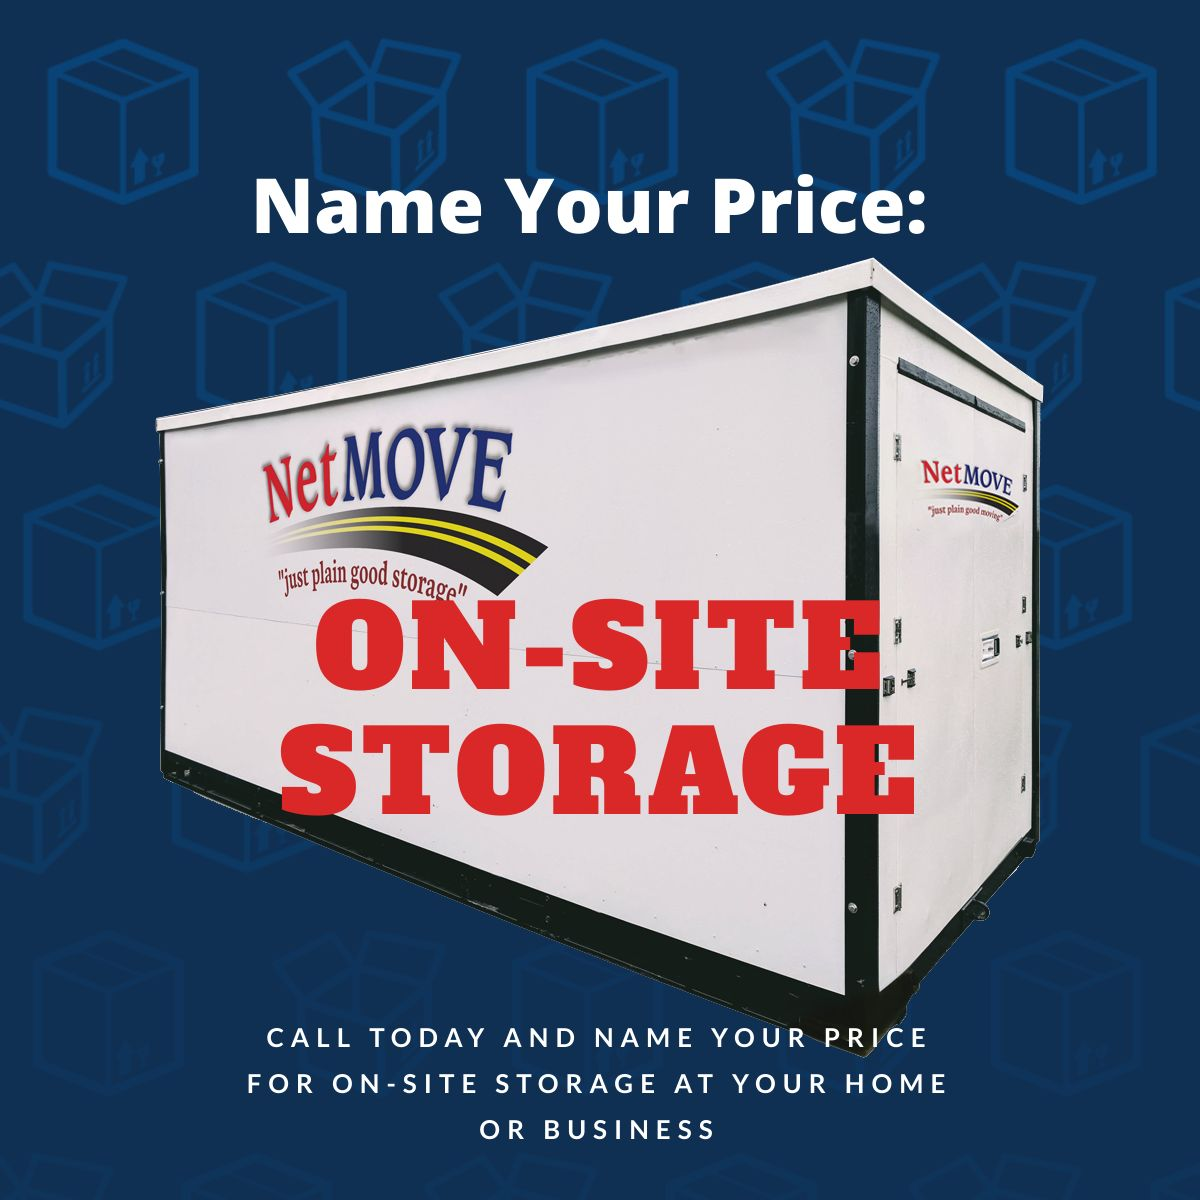 On-site Storage - name your price